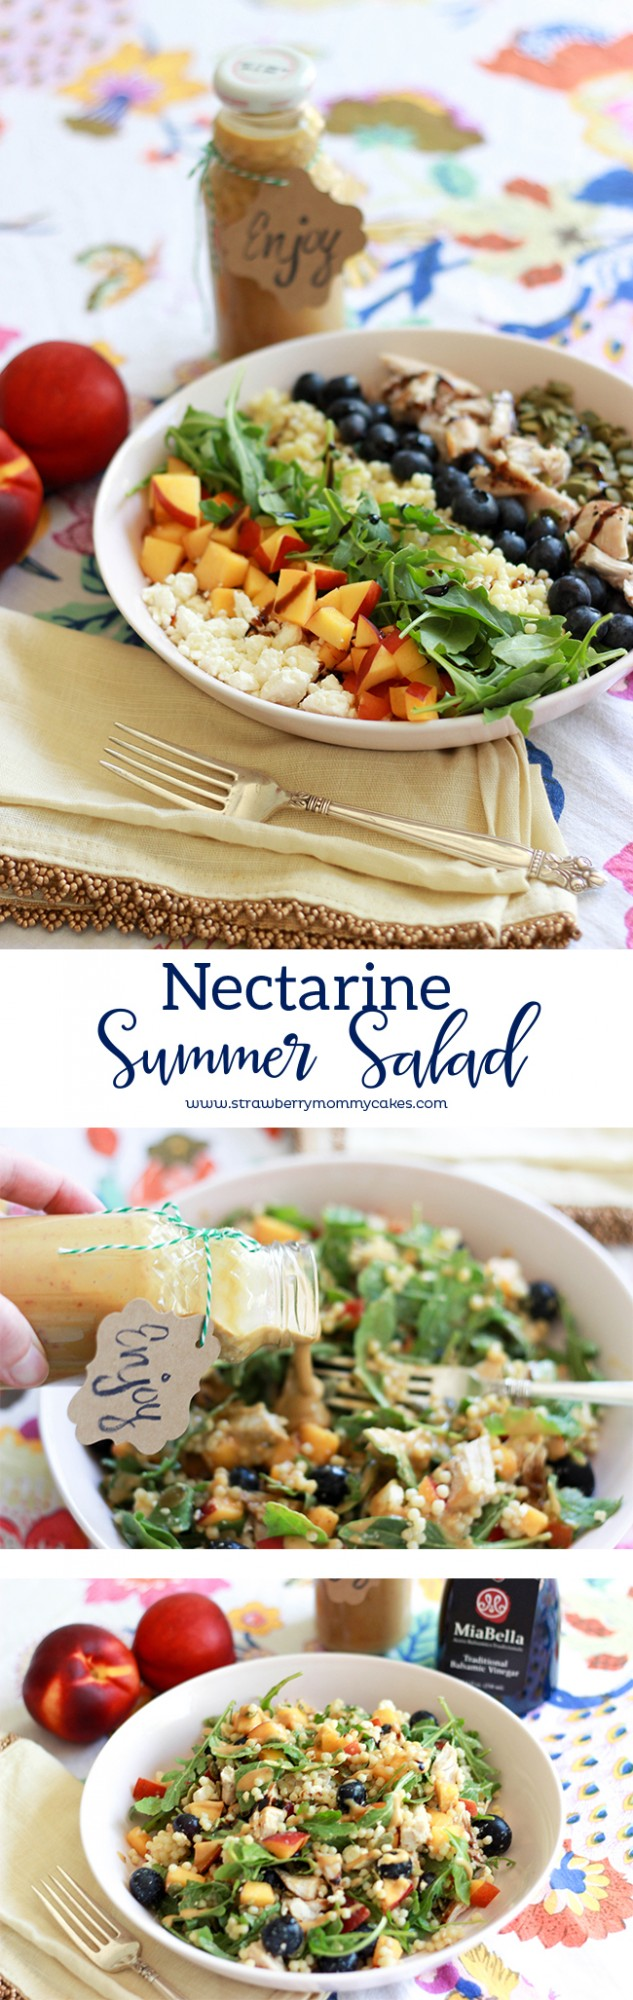 Nectarine Summer Salad Recipe